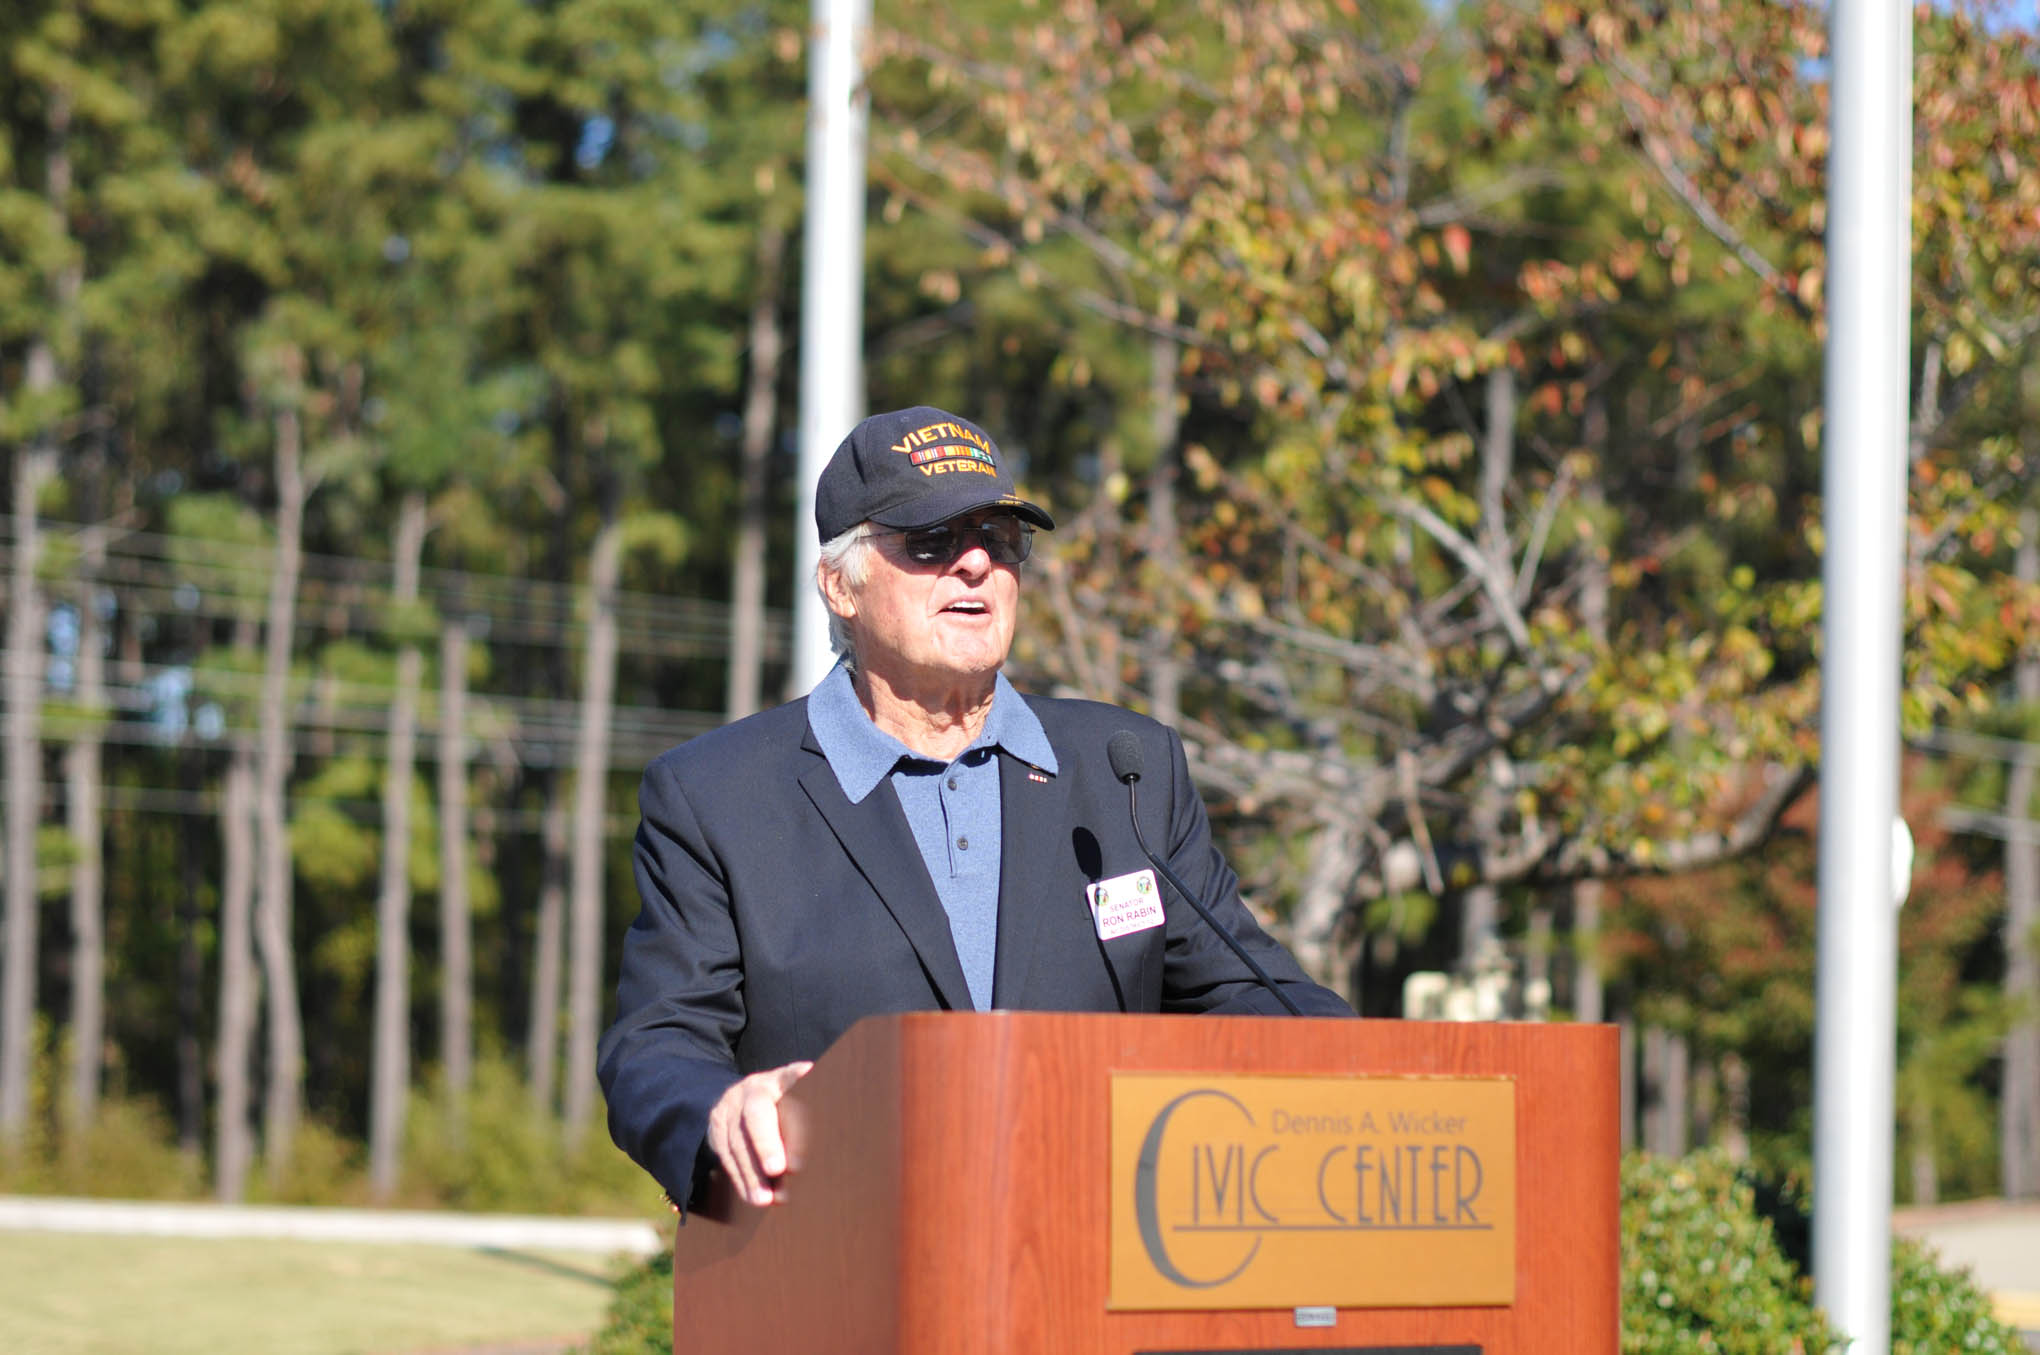 Click to enlarge,  Colonel (Ret.) Ronald Rabin, who serves as a member of the North Carolina Senate, provided opening remarks at the Veterans Day observance on Thursday, Nov. 10, at the Dennis A. Wicker Civic Center.